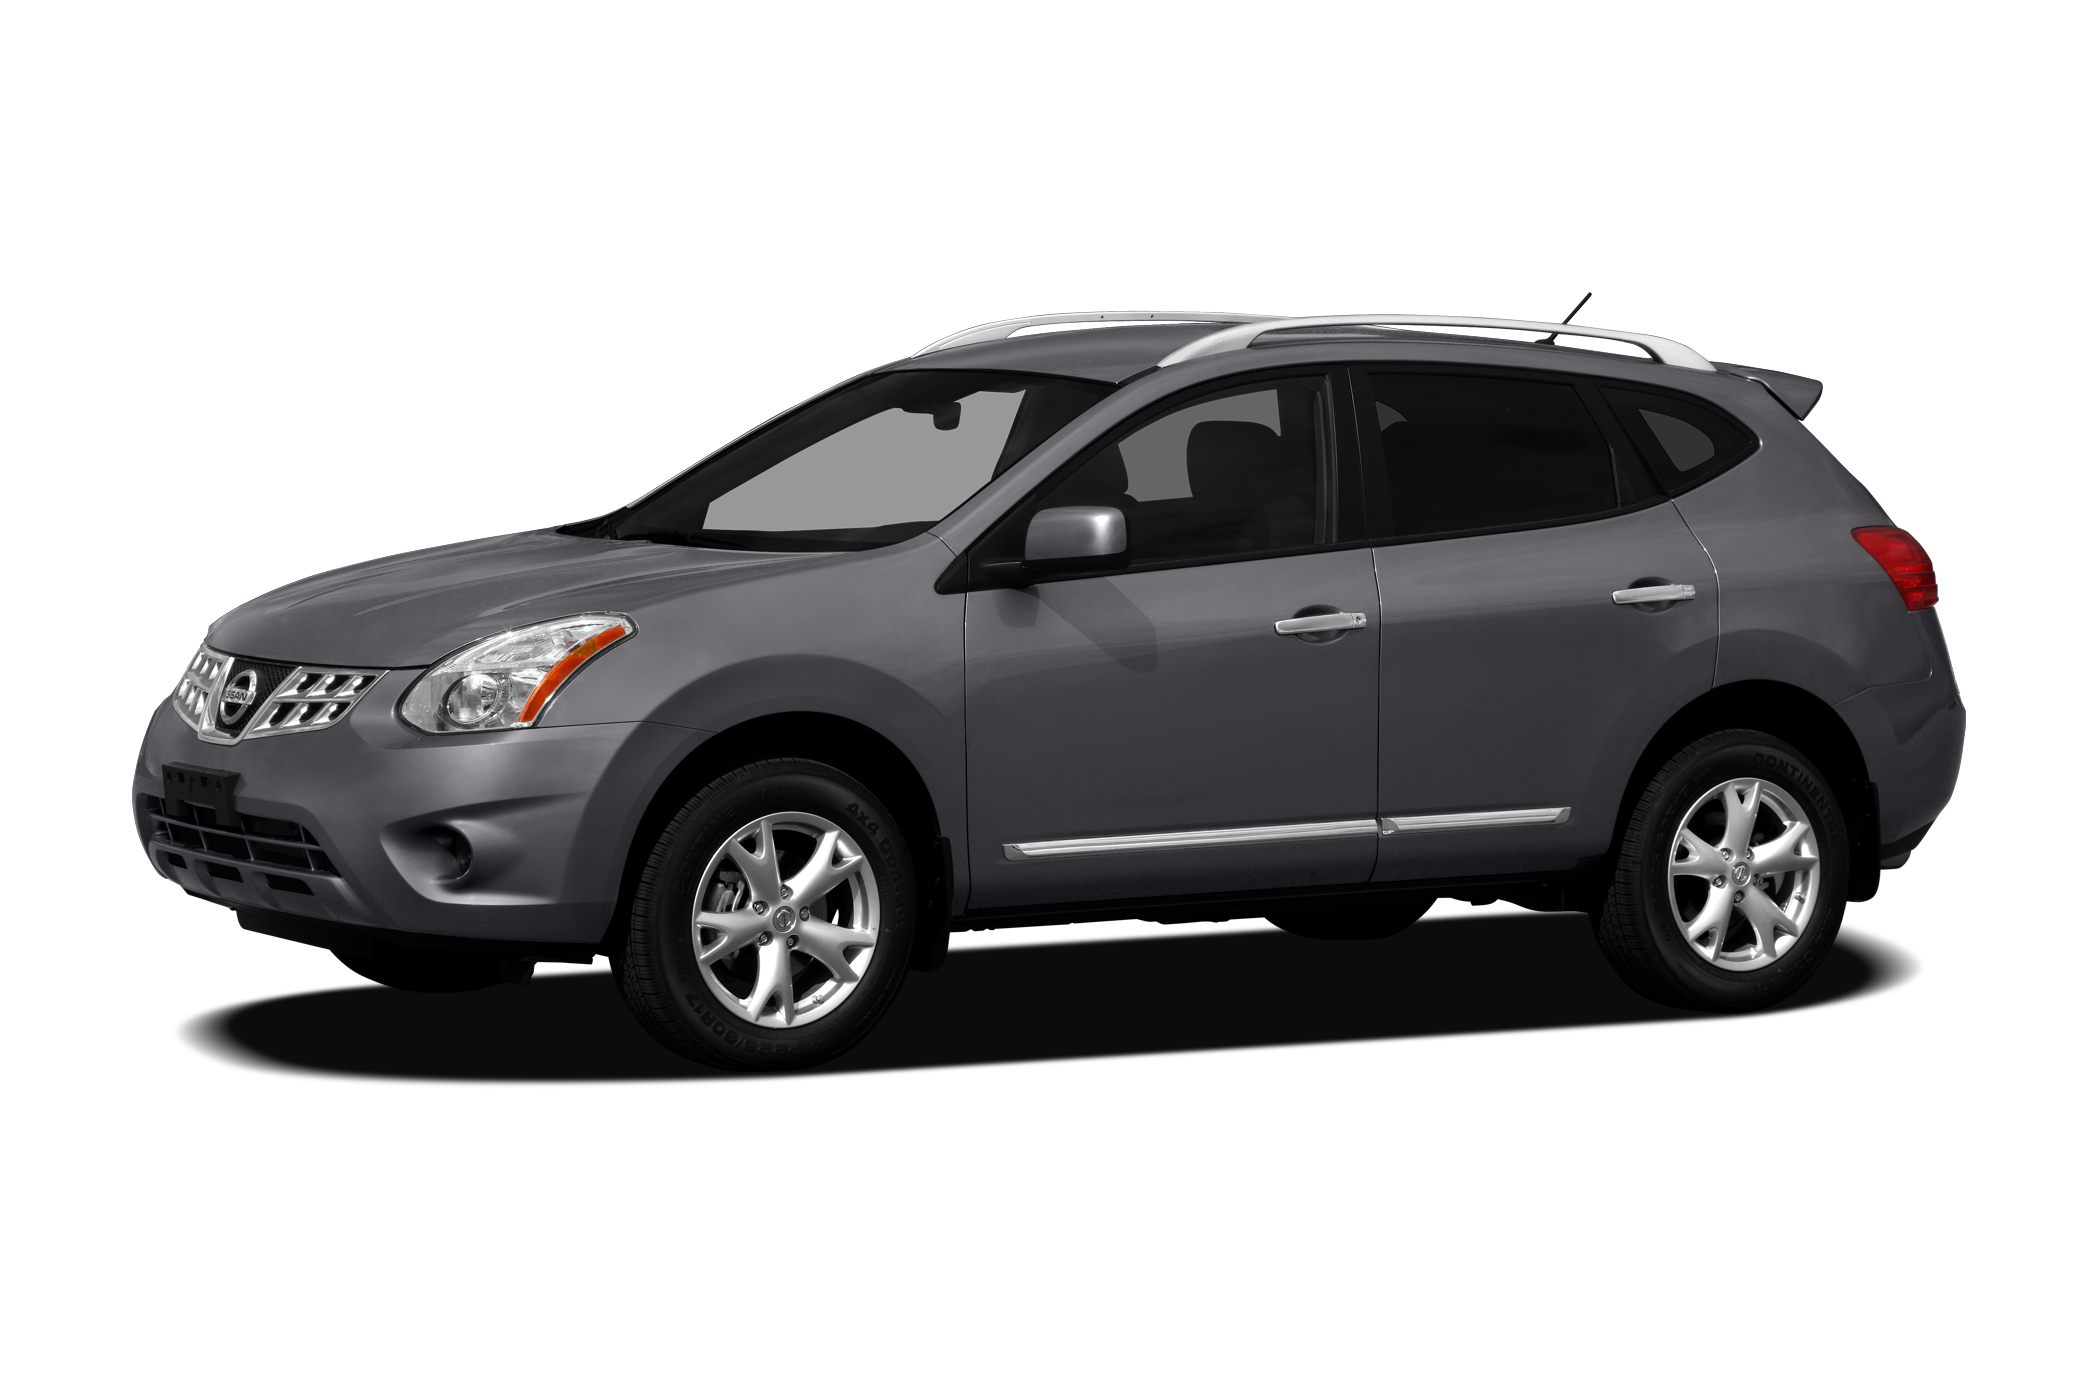 2012 Nissan Rogue S SUV for sale in Marietta for $16,851 with 47,867 miles.